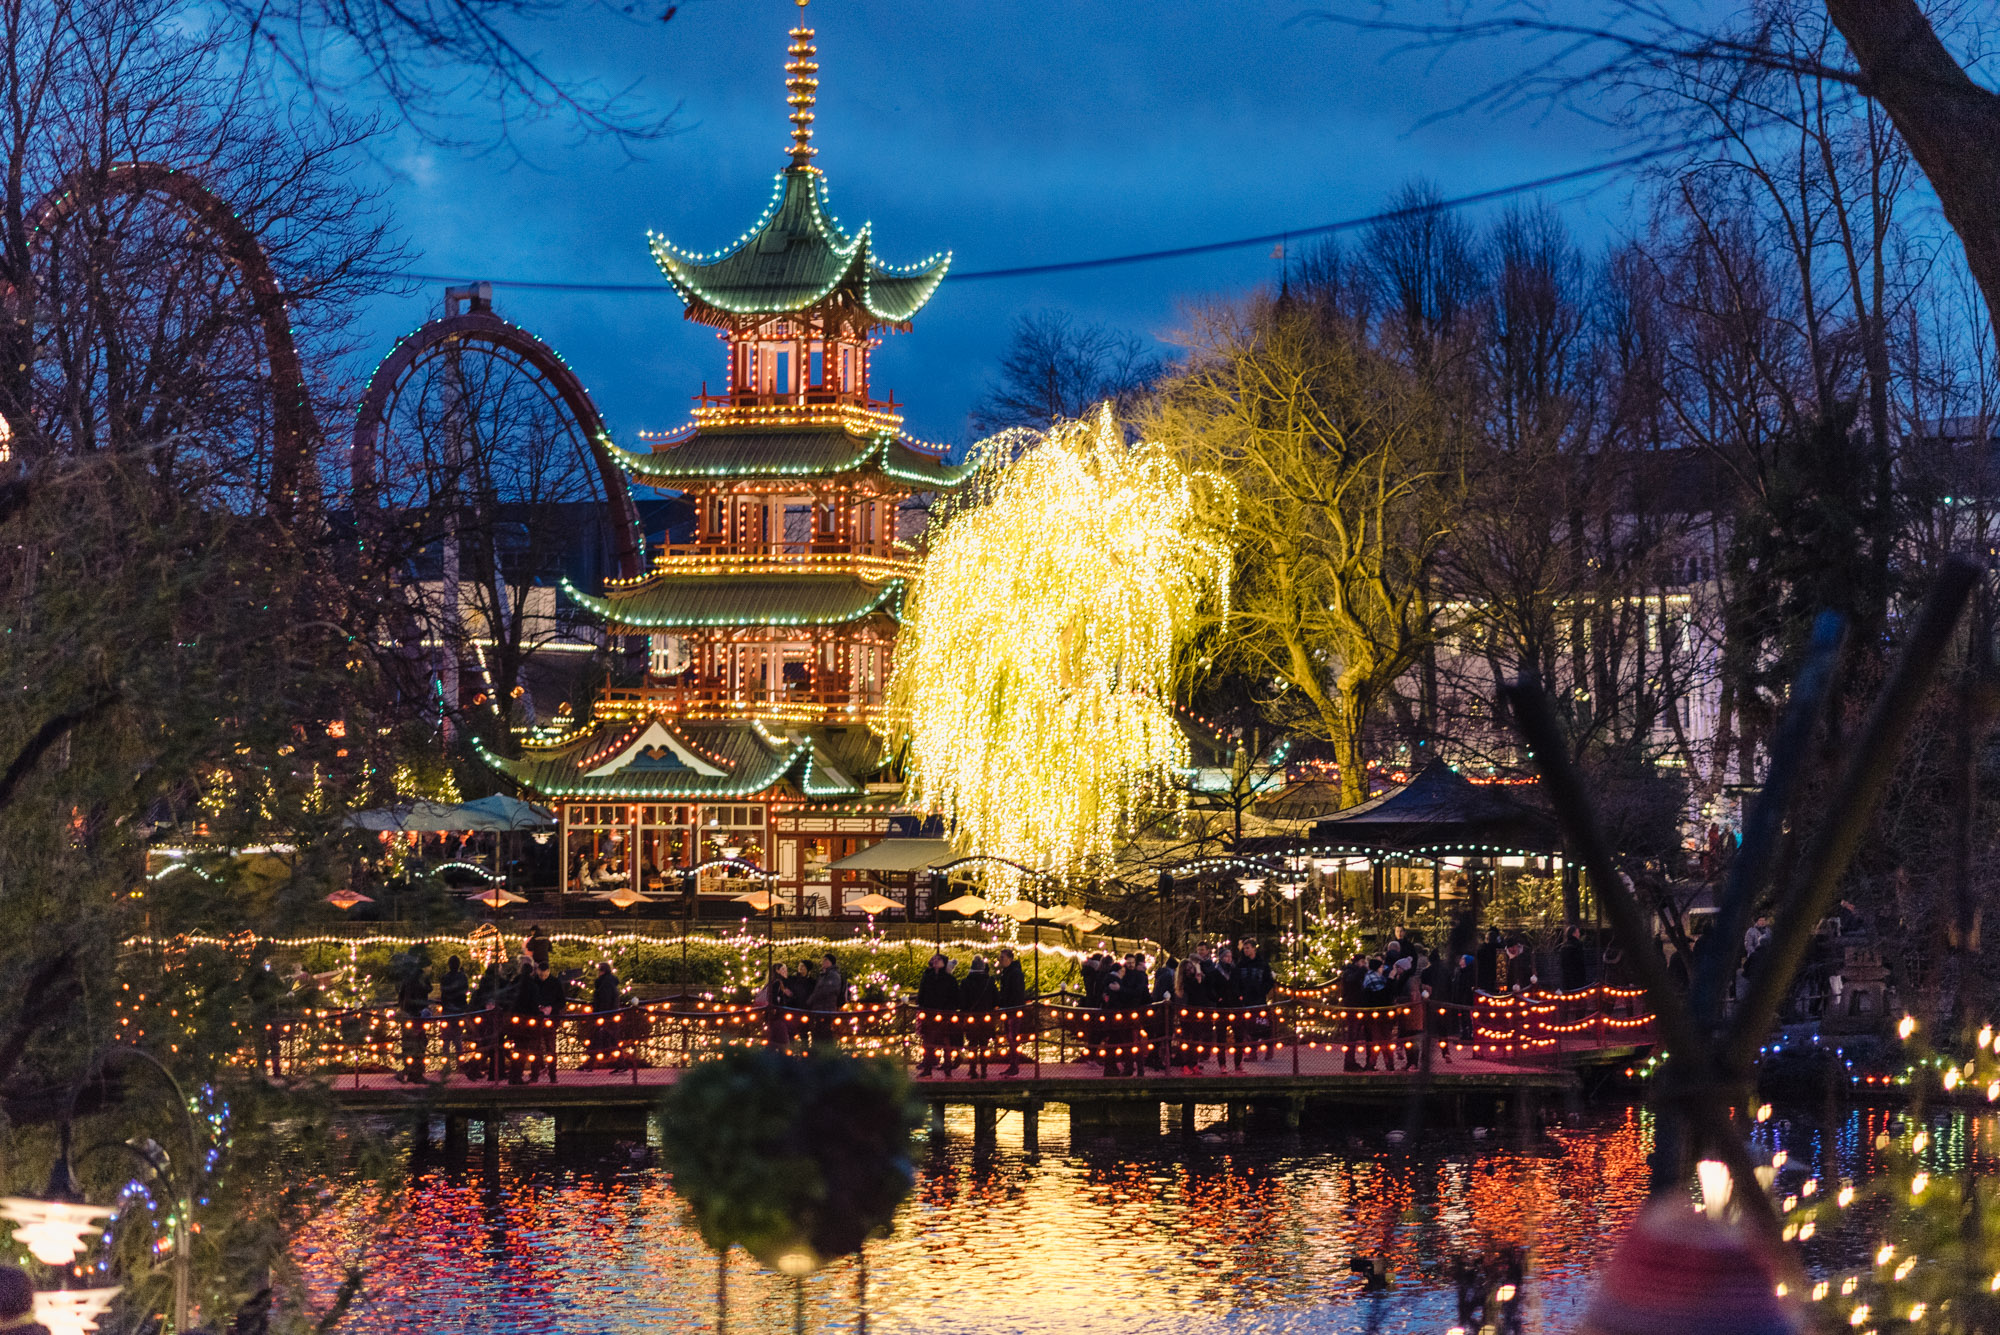 Jeff On The Road - Travel - Copenhagen - Things To Do - Visit Tivoli Gardens - All photos are under Copyright © 2017 Jeff Frenette Photography / dezjeff. To use the photos, please contact me at dezjeff@me.com.